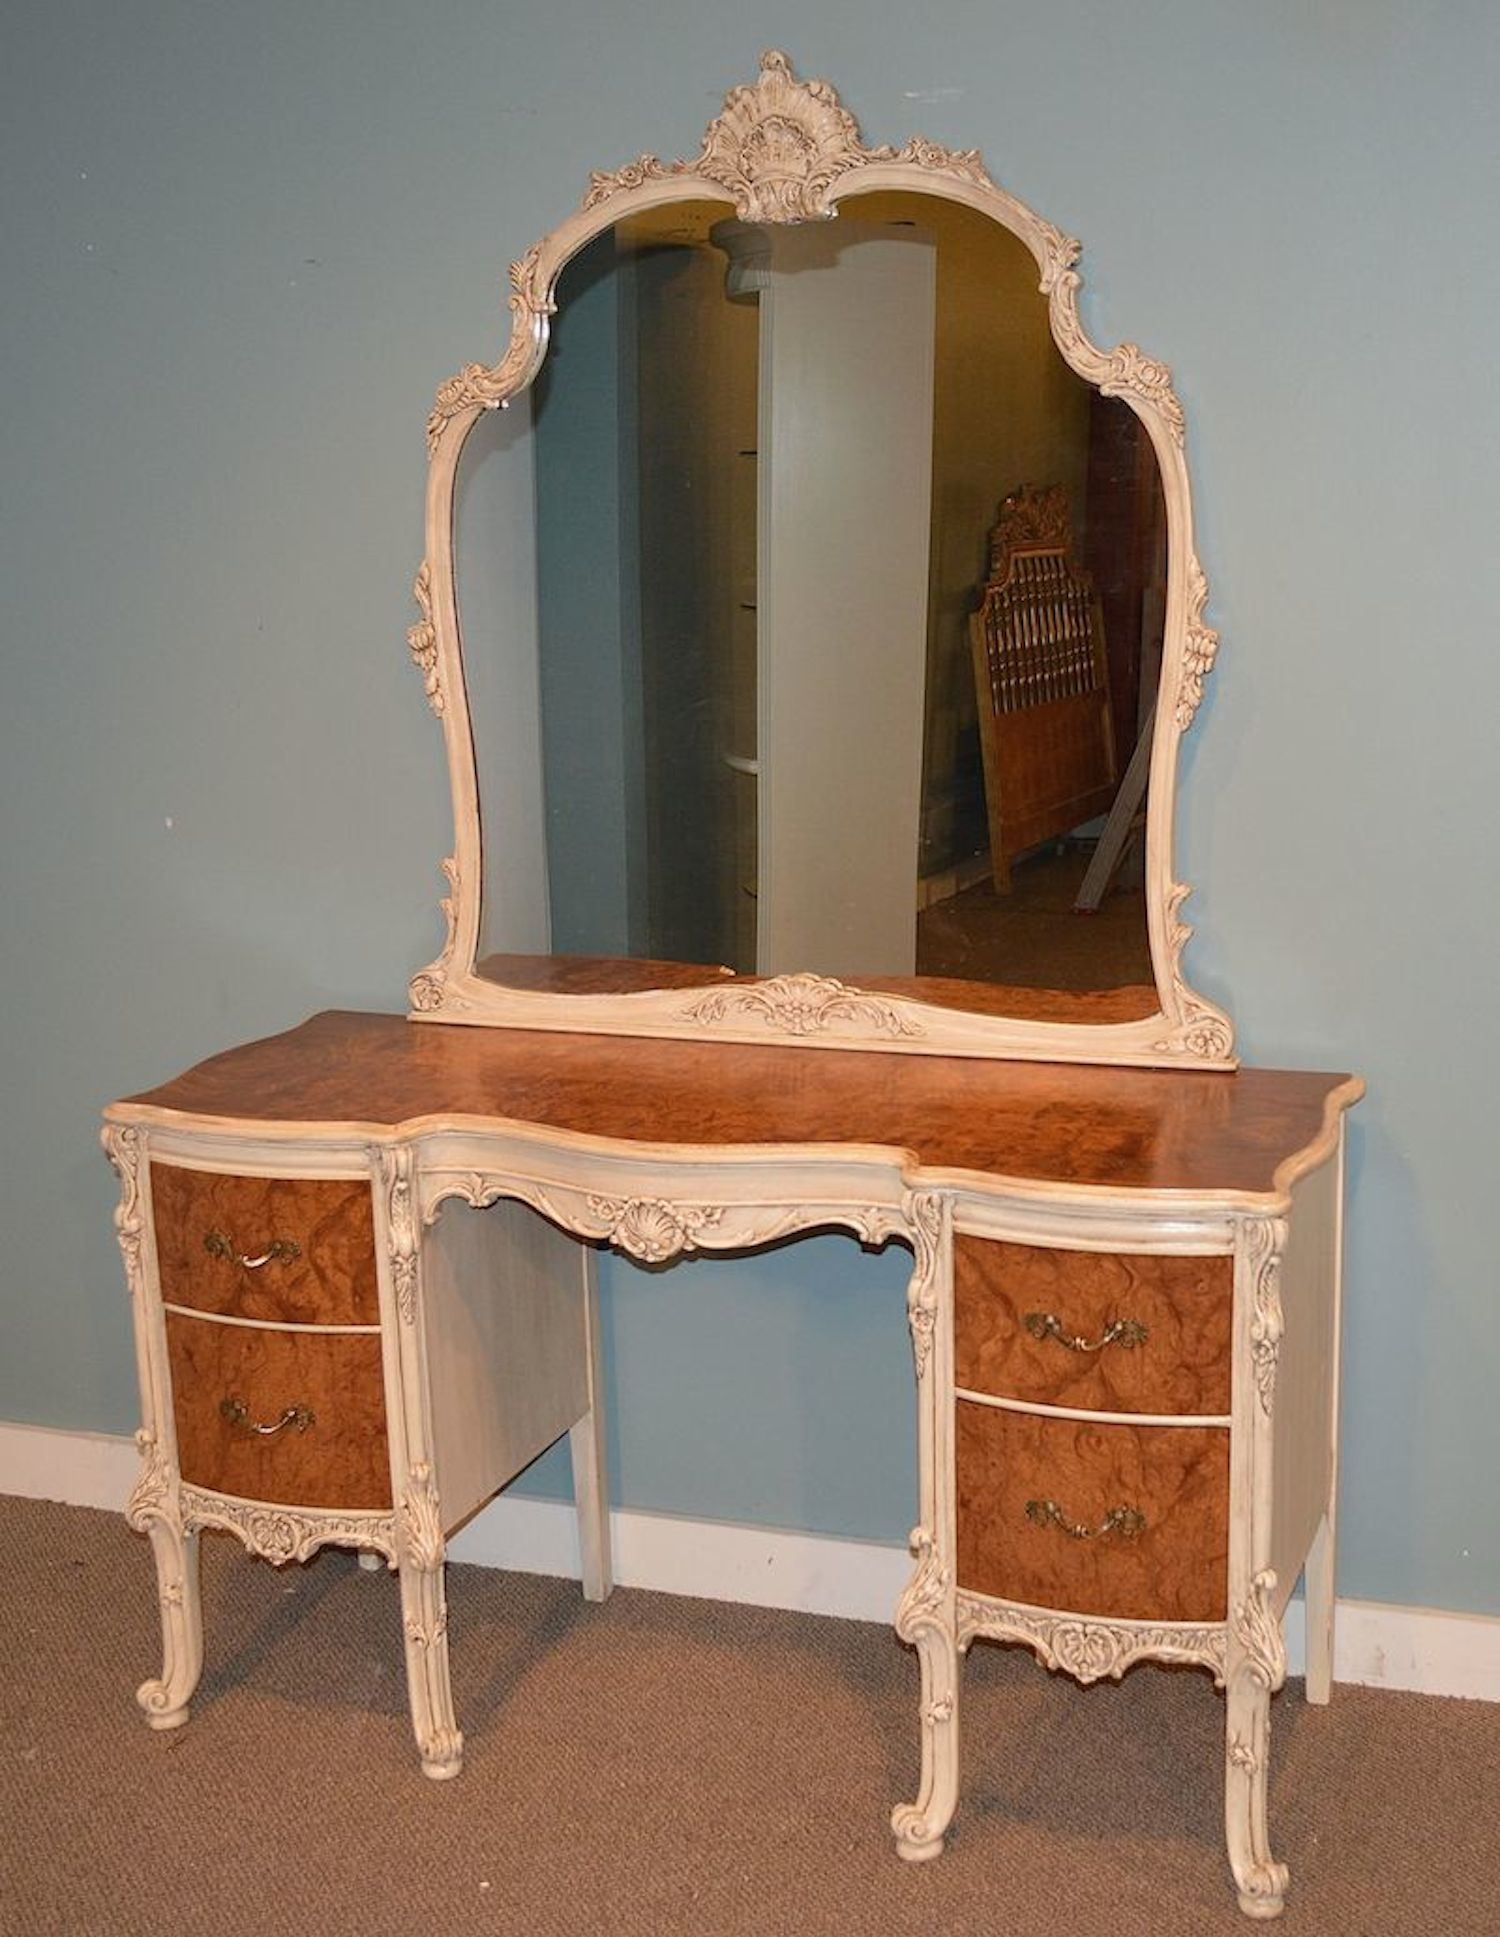 Vintage Ornate French Provincial Style Vanity Dressing Table And Mirror Rox Age 70 Yrs Old Fully Red Very Clean Condition Truly